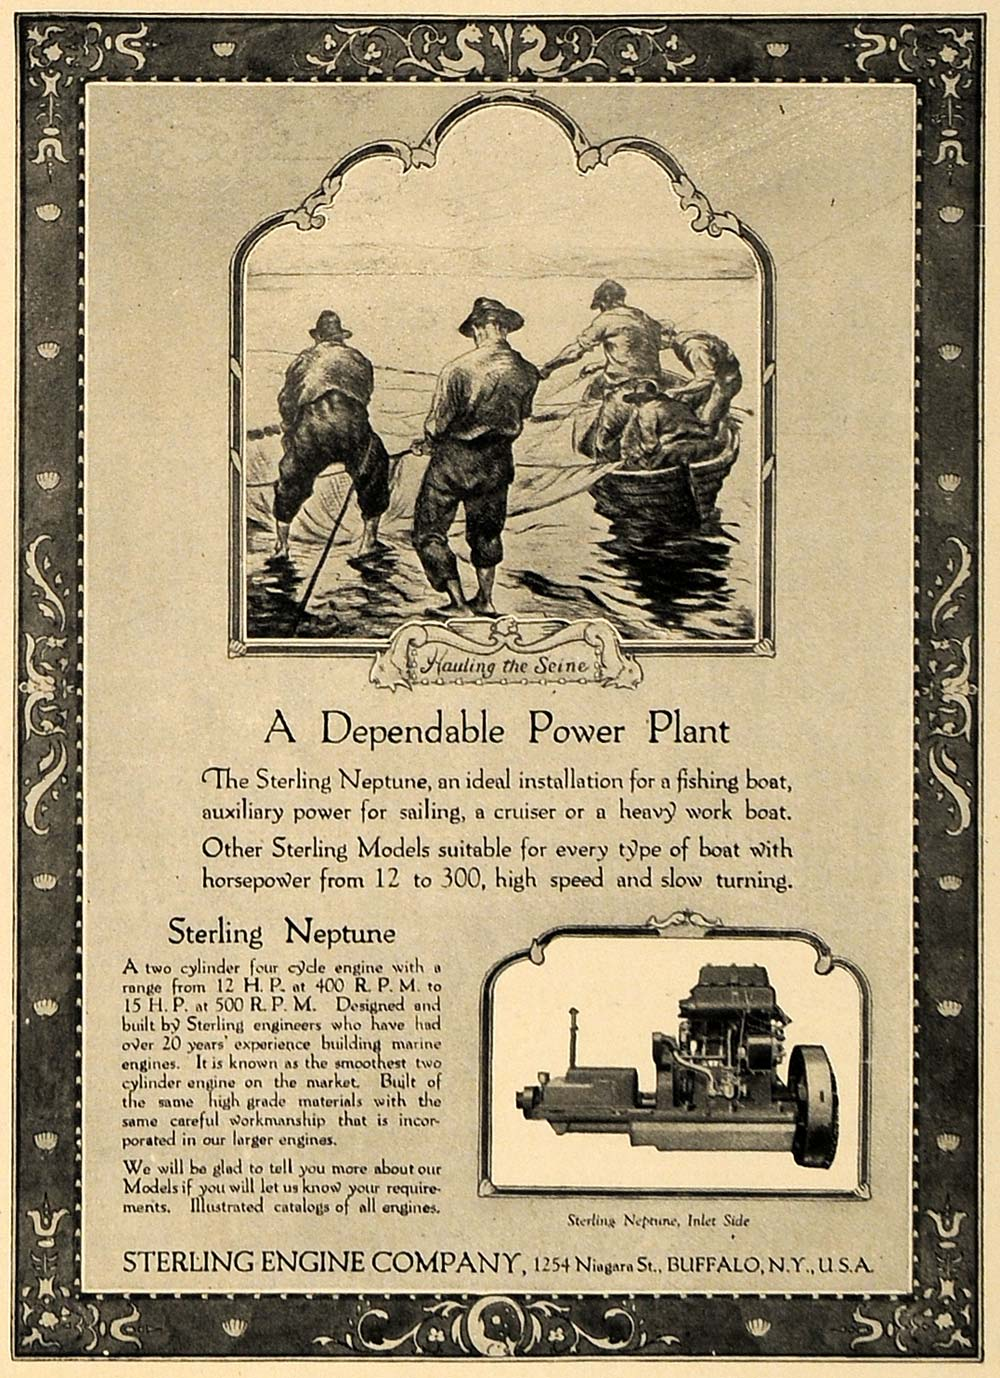 1924 Ad Sterling Neptune Fish Boat Engine Power Plant - ORIGINAL ADVERTISING CL8